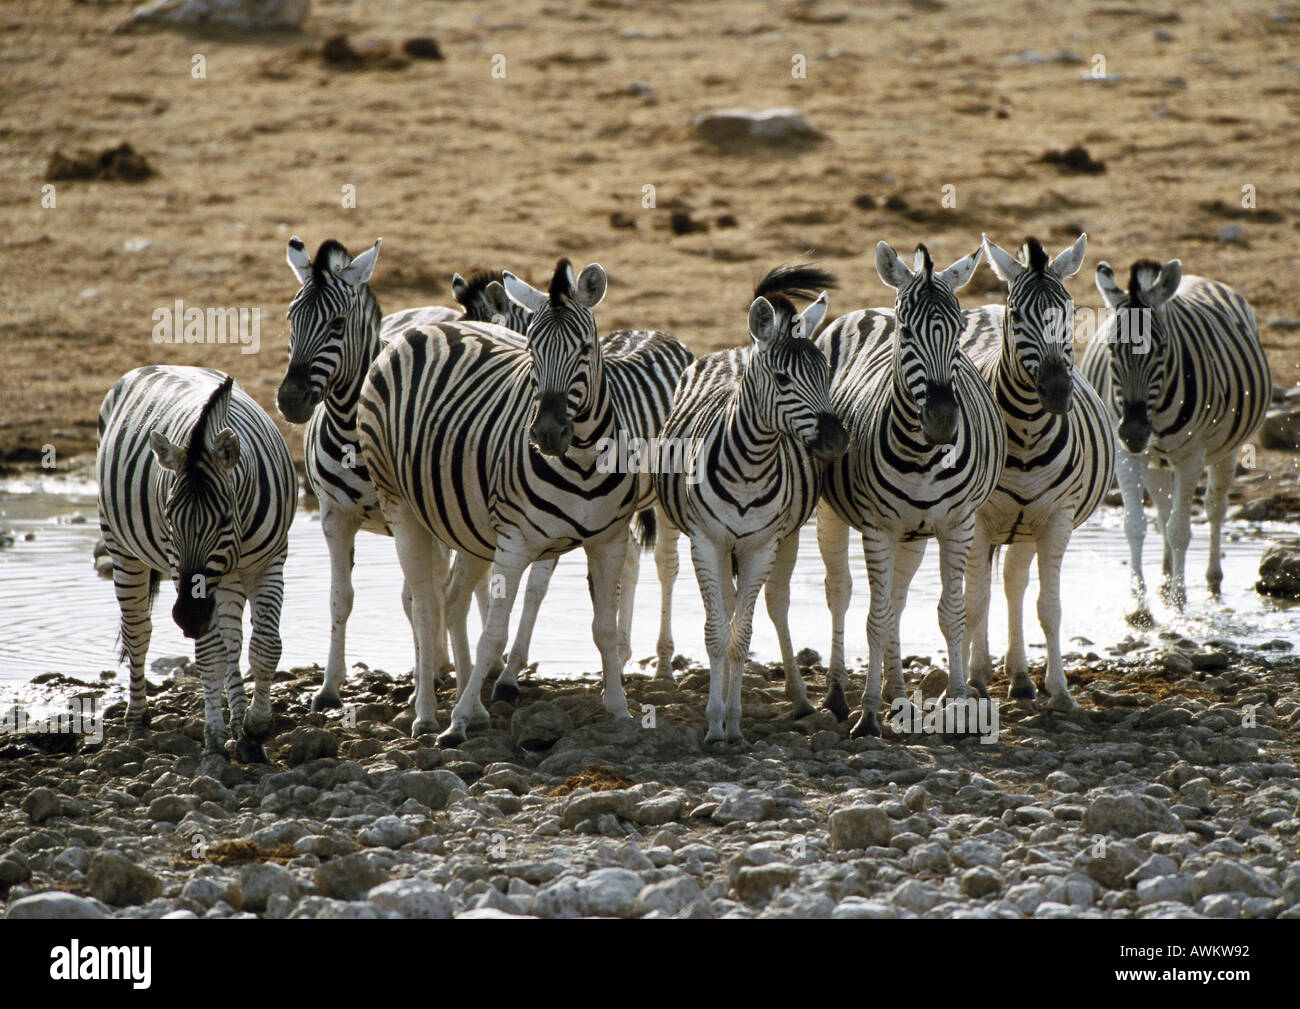 Africa, Namibia, group of Burchell's Zebras (Equus quagga burchellii) standing in front of pond - Stock Photo